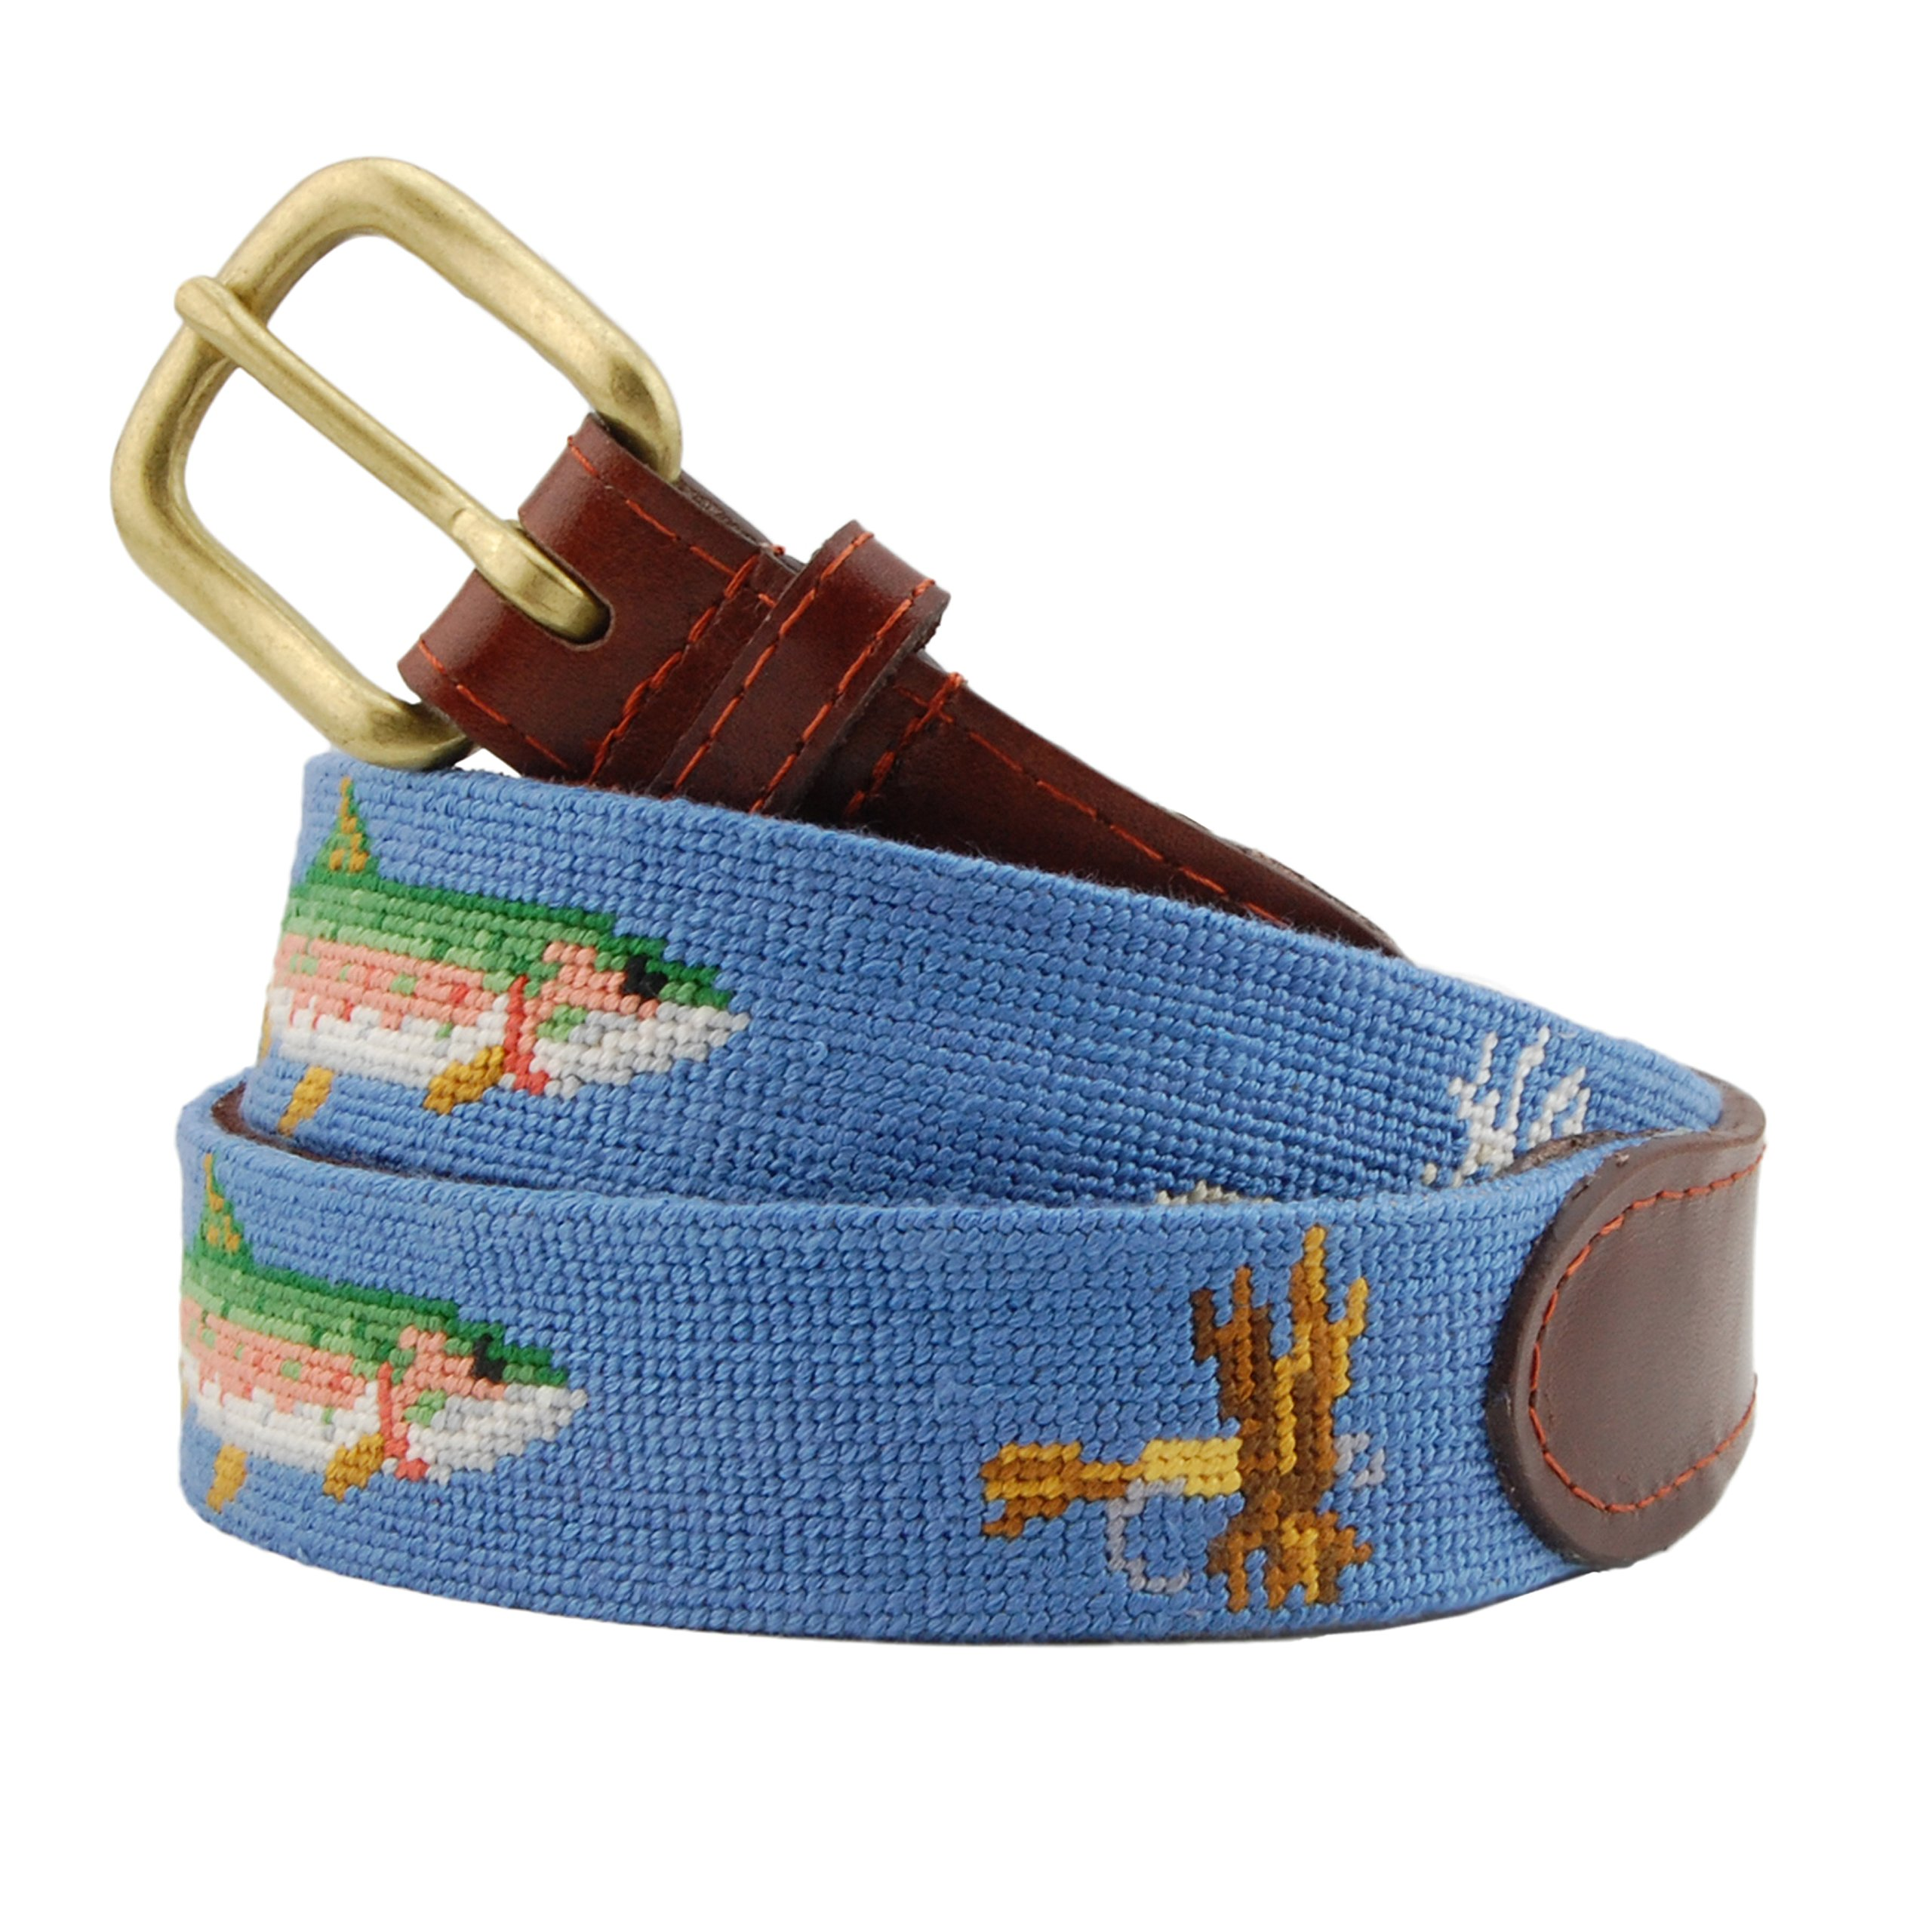 Smathers & Branson Men's Trout and Fly Needlepoint Belt 42 Stream Blue by Smathers & Branson